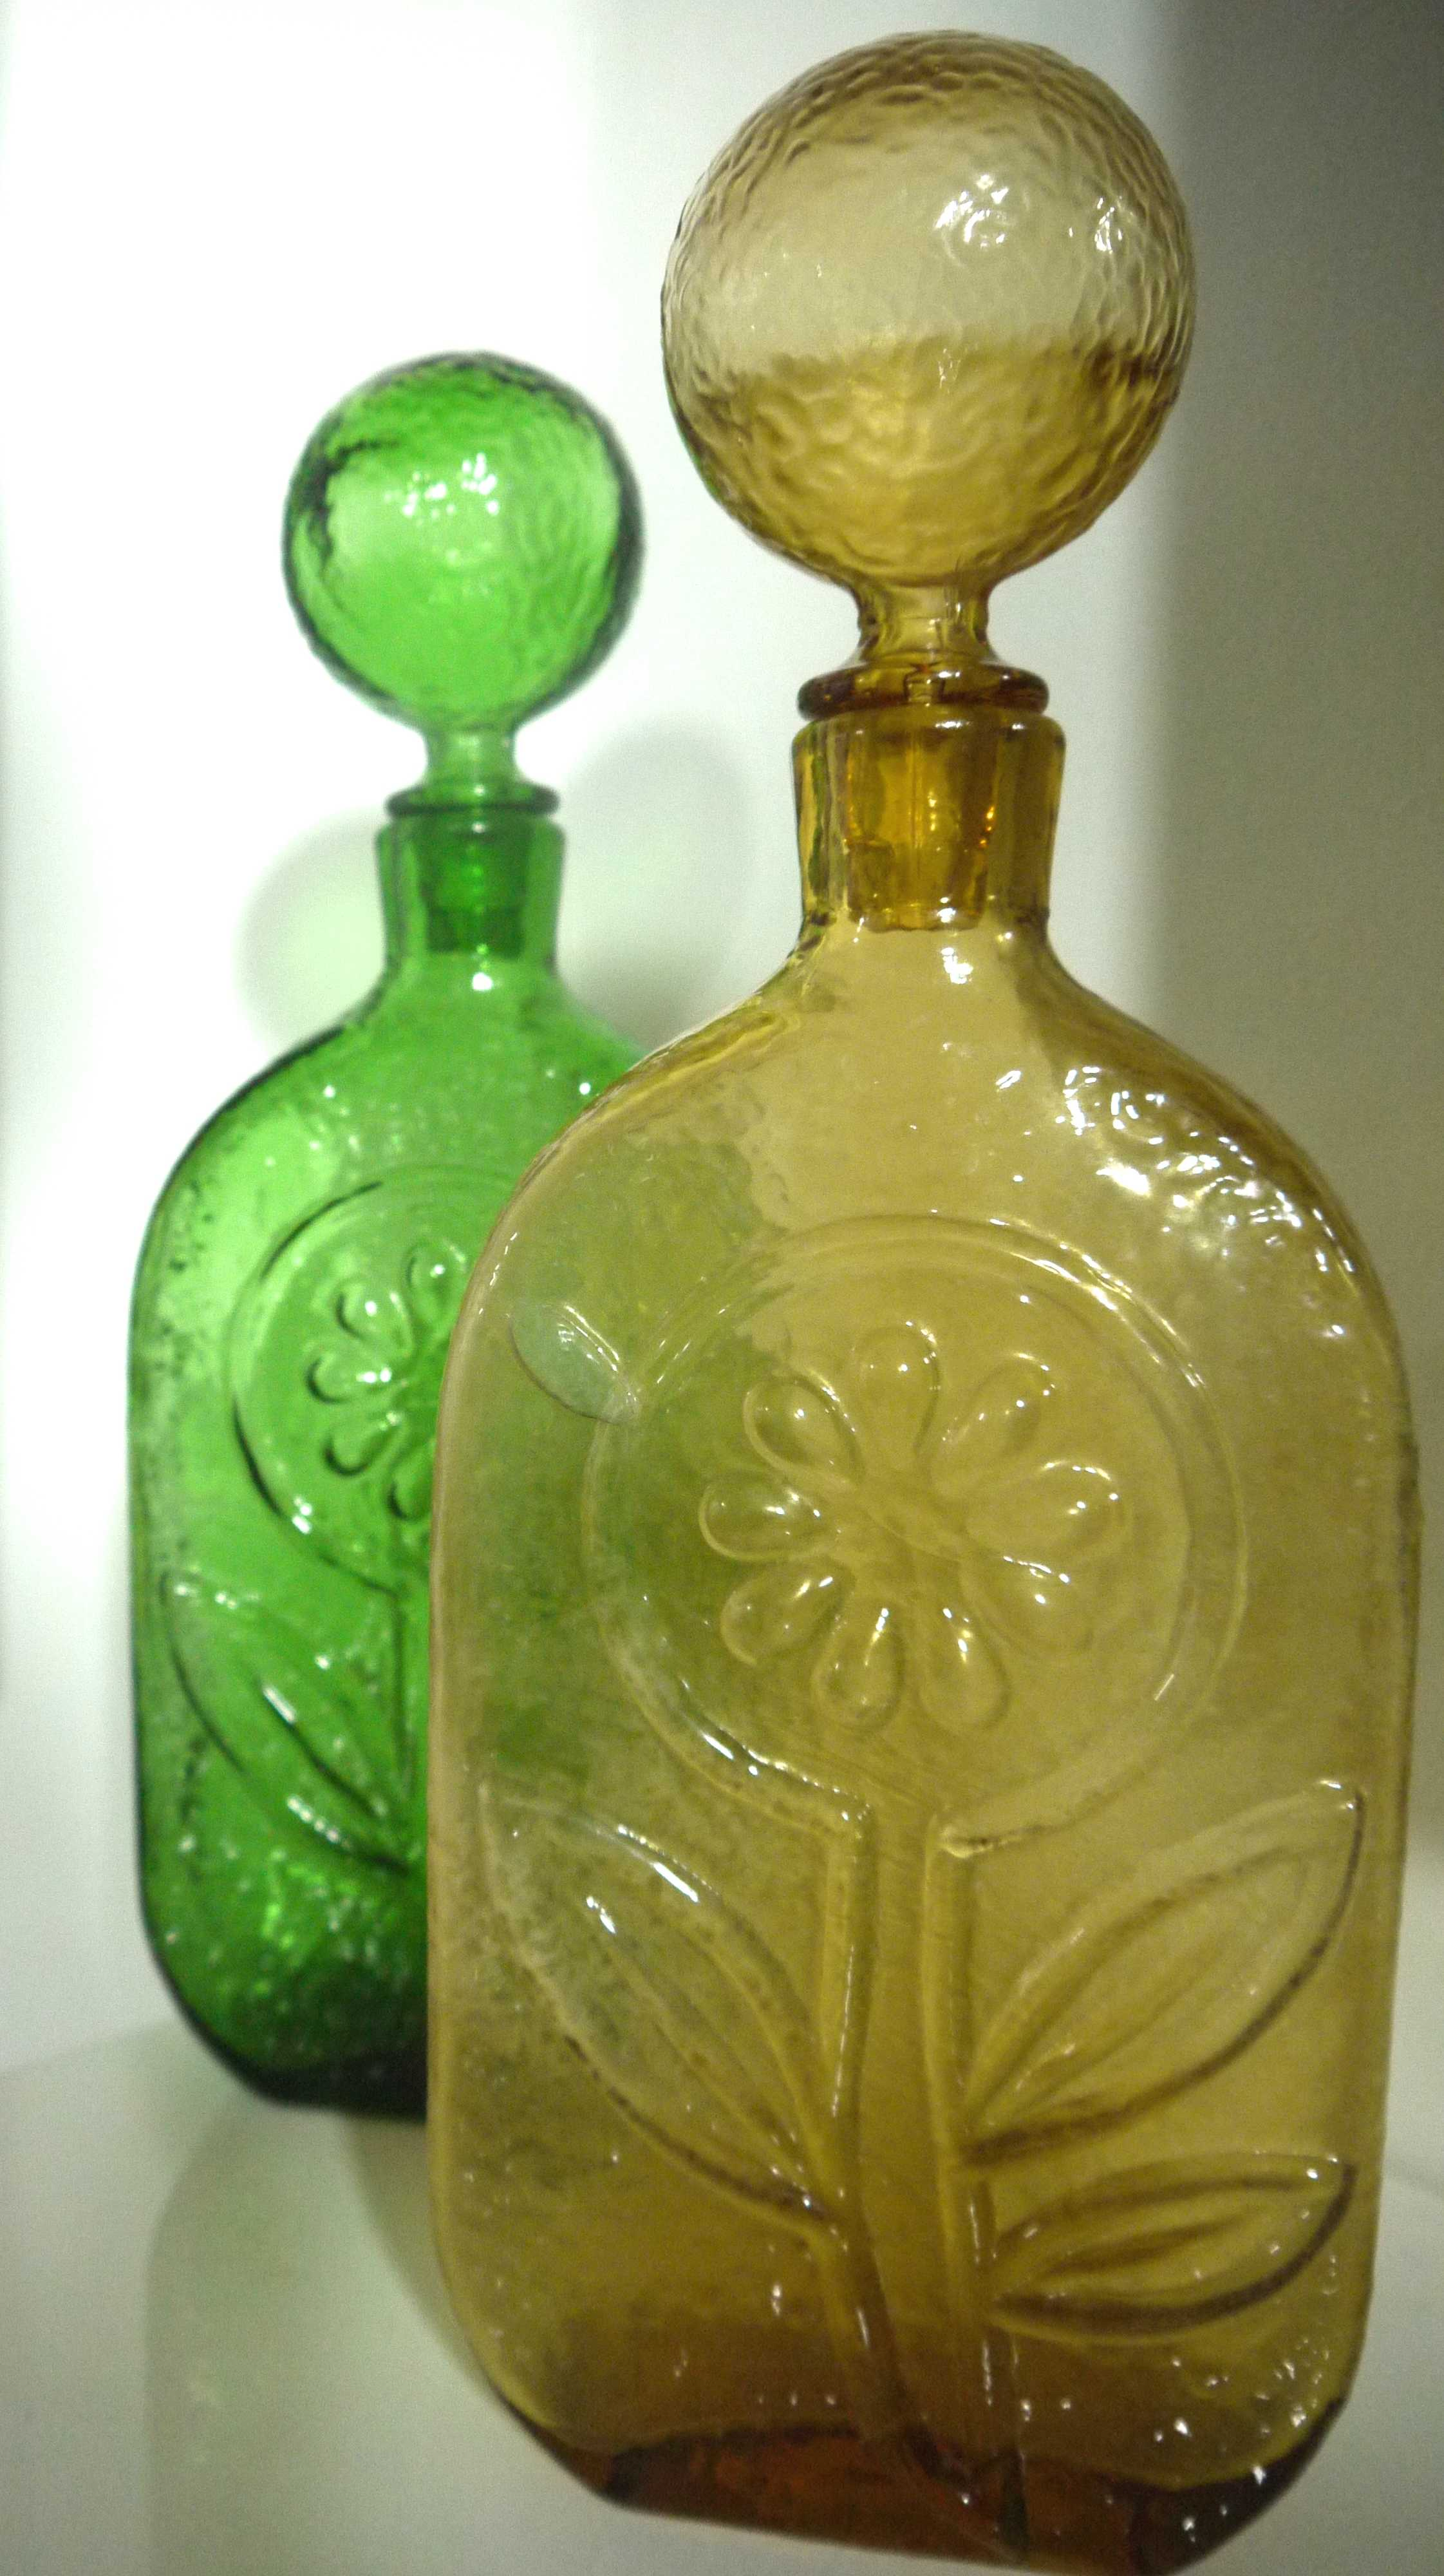 Green and Amber Italian Empoli decanters